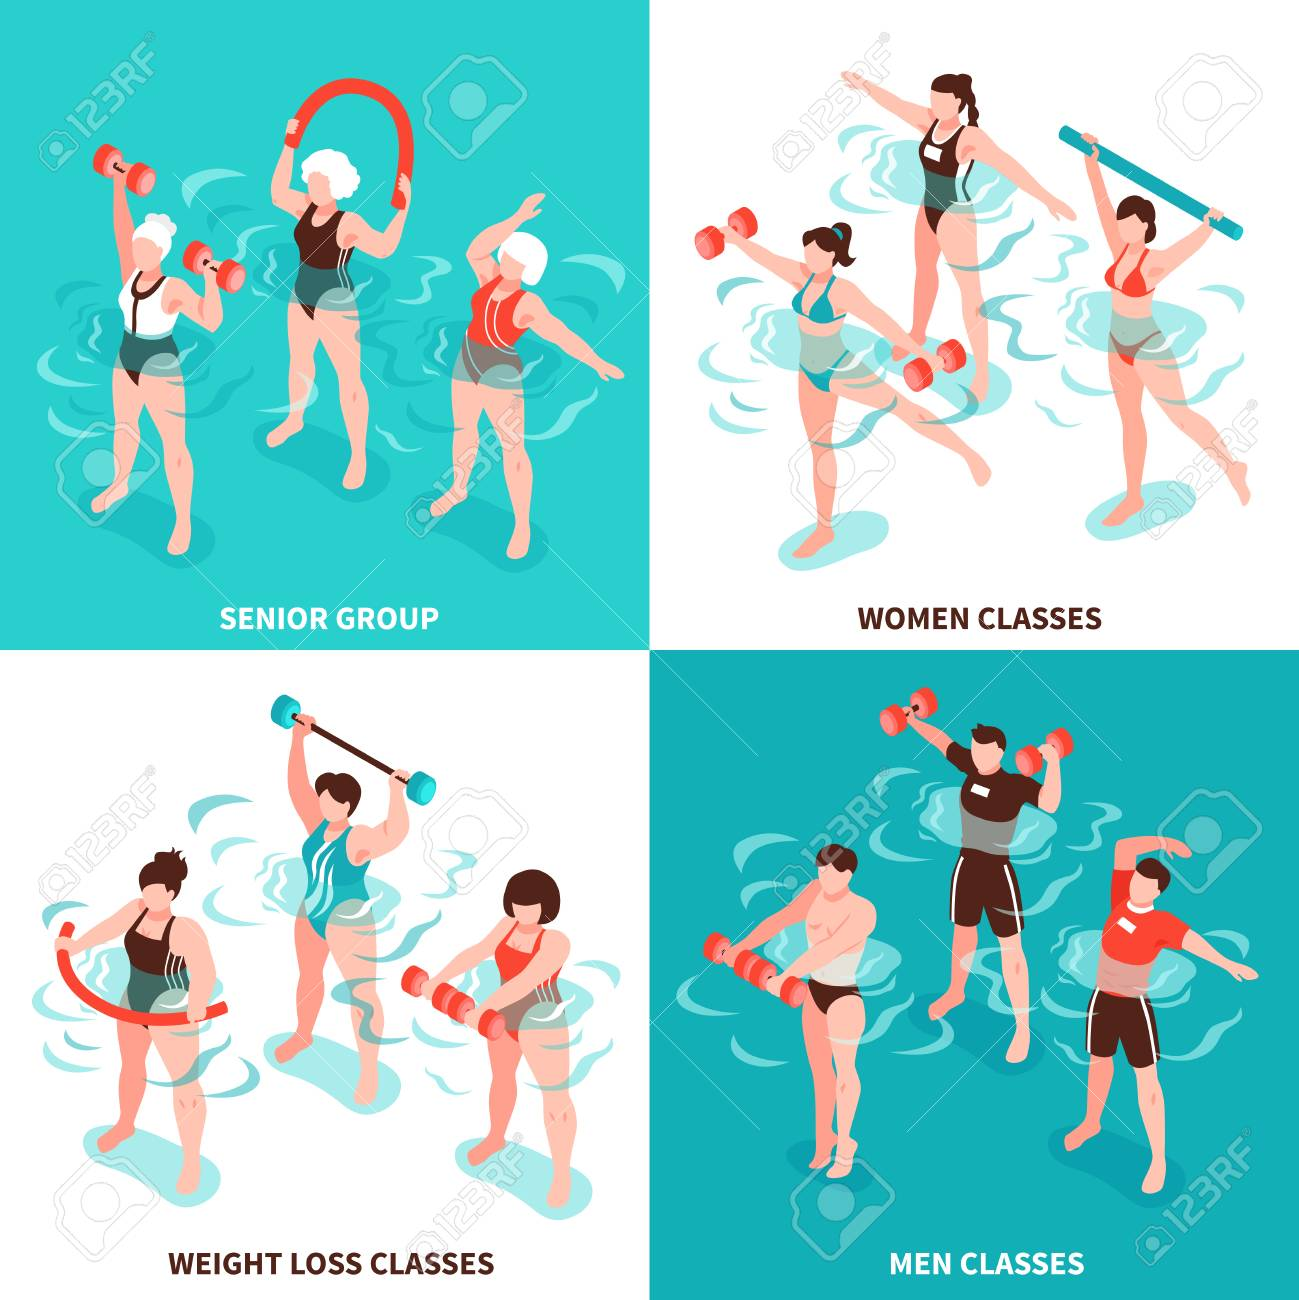 Aqua aerobics men and women classes senior group for persons losing weight isometric concept isolated vector illustration - 103965354